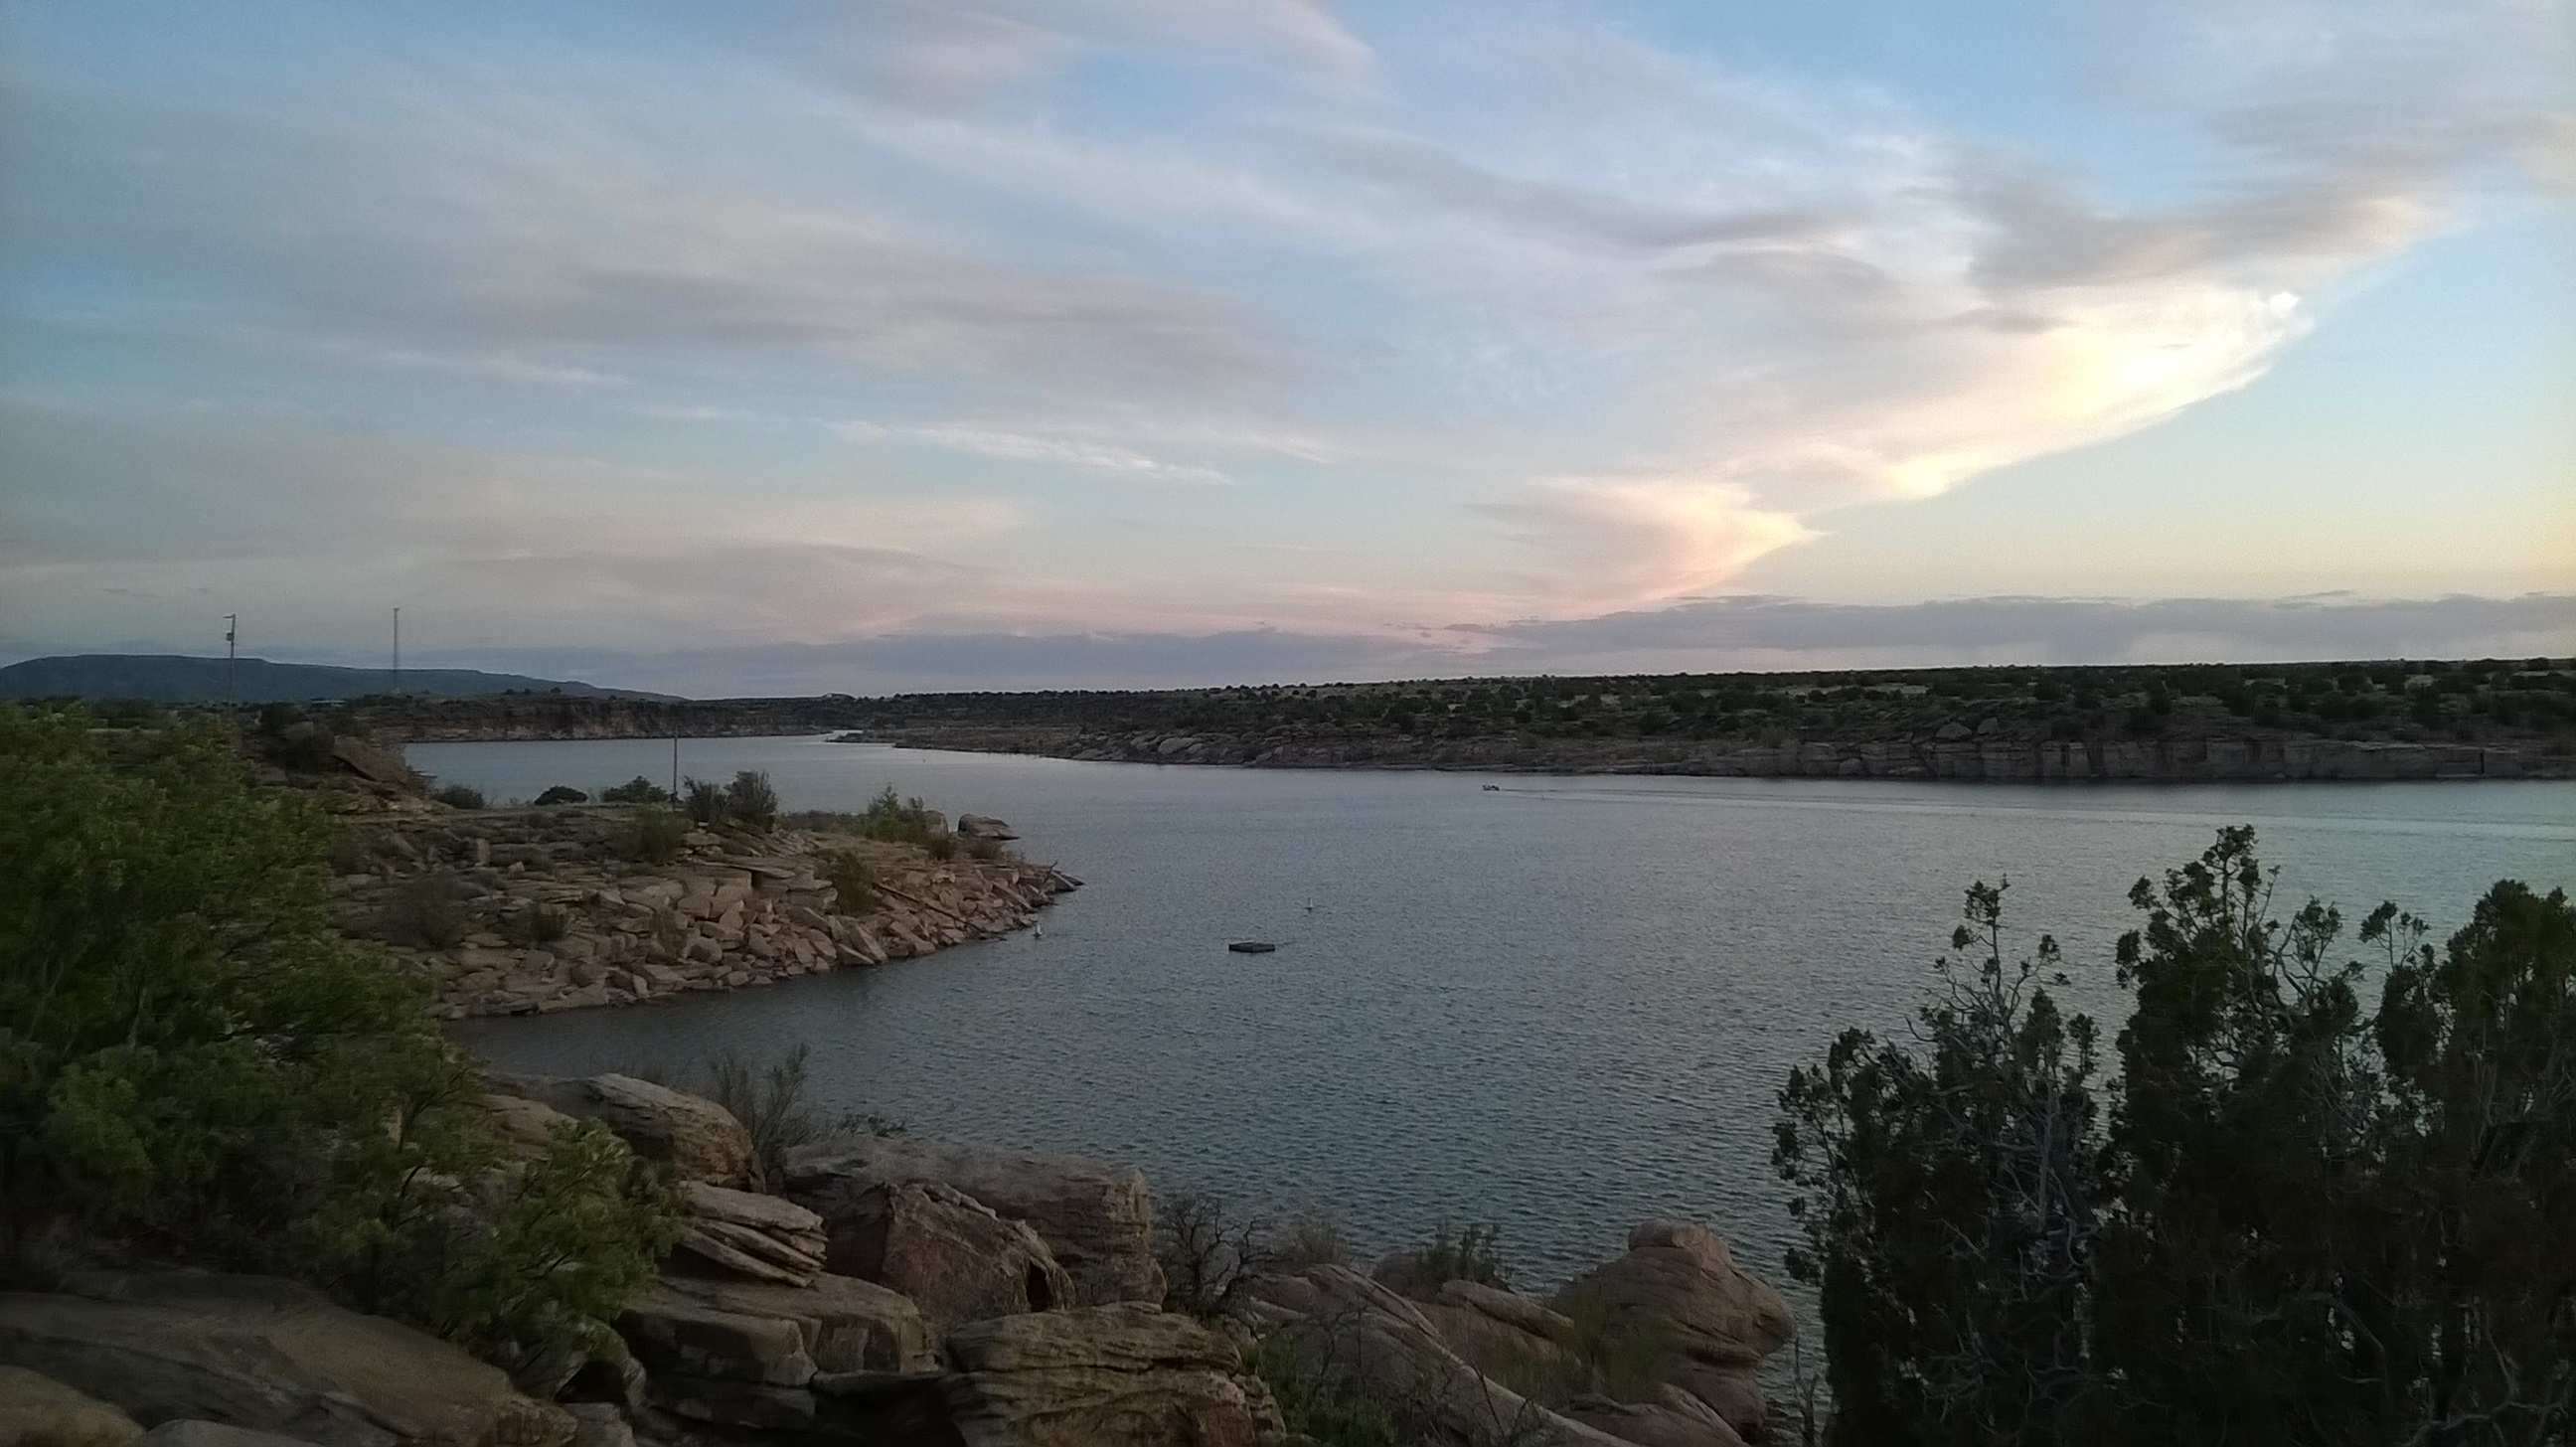 conchas dam big and beautiful singles 134 paisano, conchas dam, nm is a 492 sq ft 1 bed, 075 bath home sold in  conchas dam  single-family home 1 bed 0 bath built in 1992 492 sqft $69/ sqft description beautiful views of surrounding mesas and not far to conchas  lake.